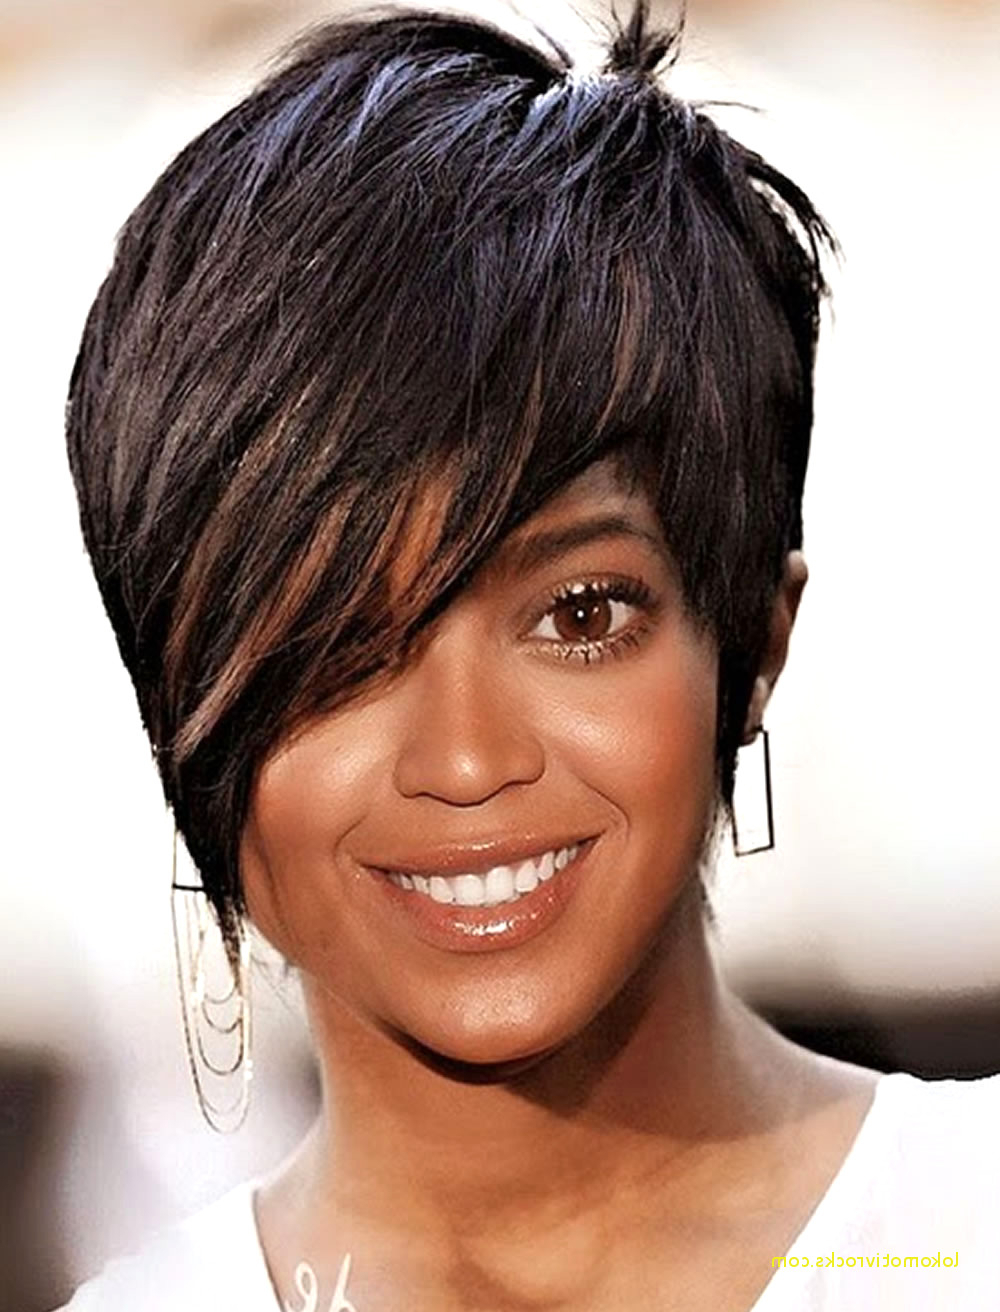 Top Result 50 Beautiful Short Bob Hairstyles For Black Women Photos Throughout Black Bob Short Hairstyles (View 14 of 25)